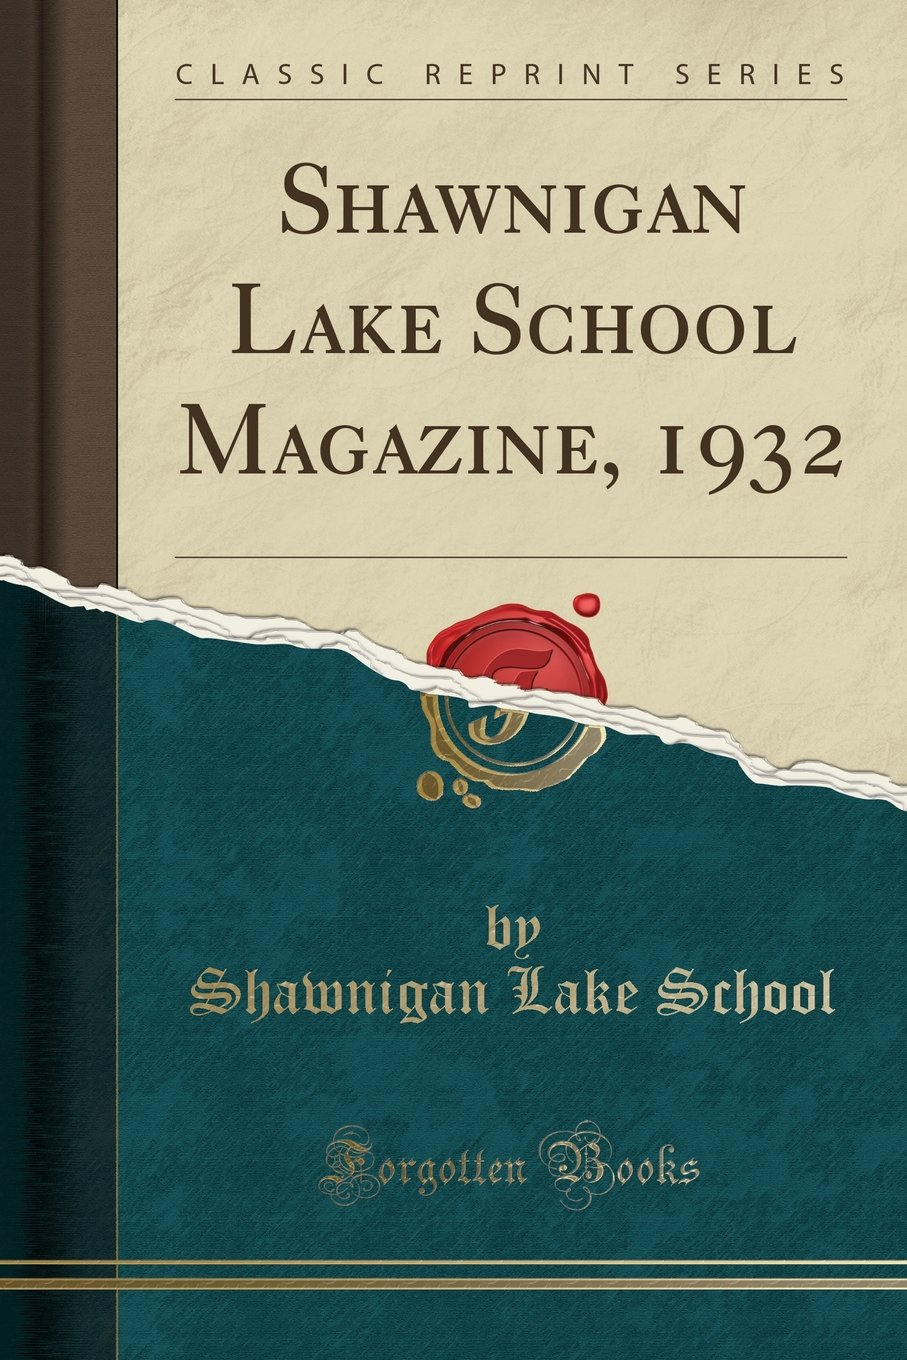 Shawnigan Lake School Magazine, 1932 (Classic Reprint) PDF